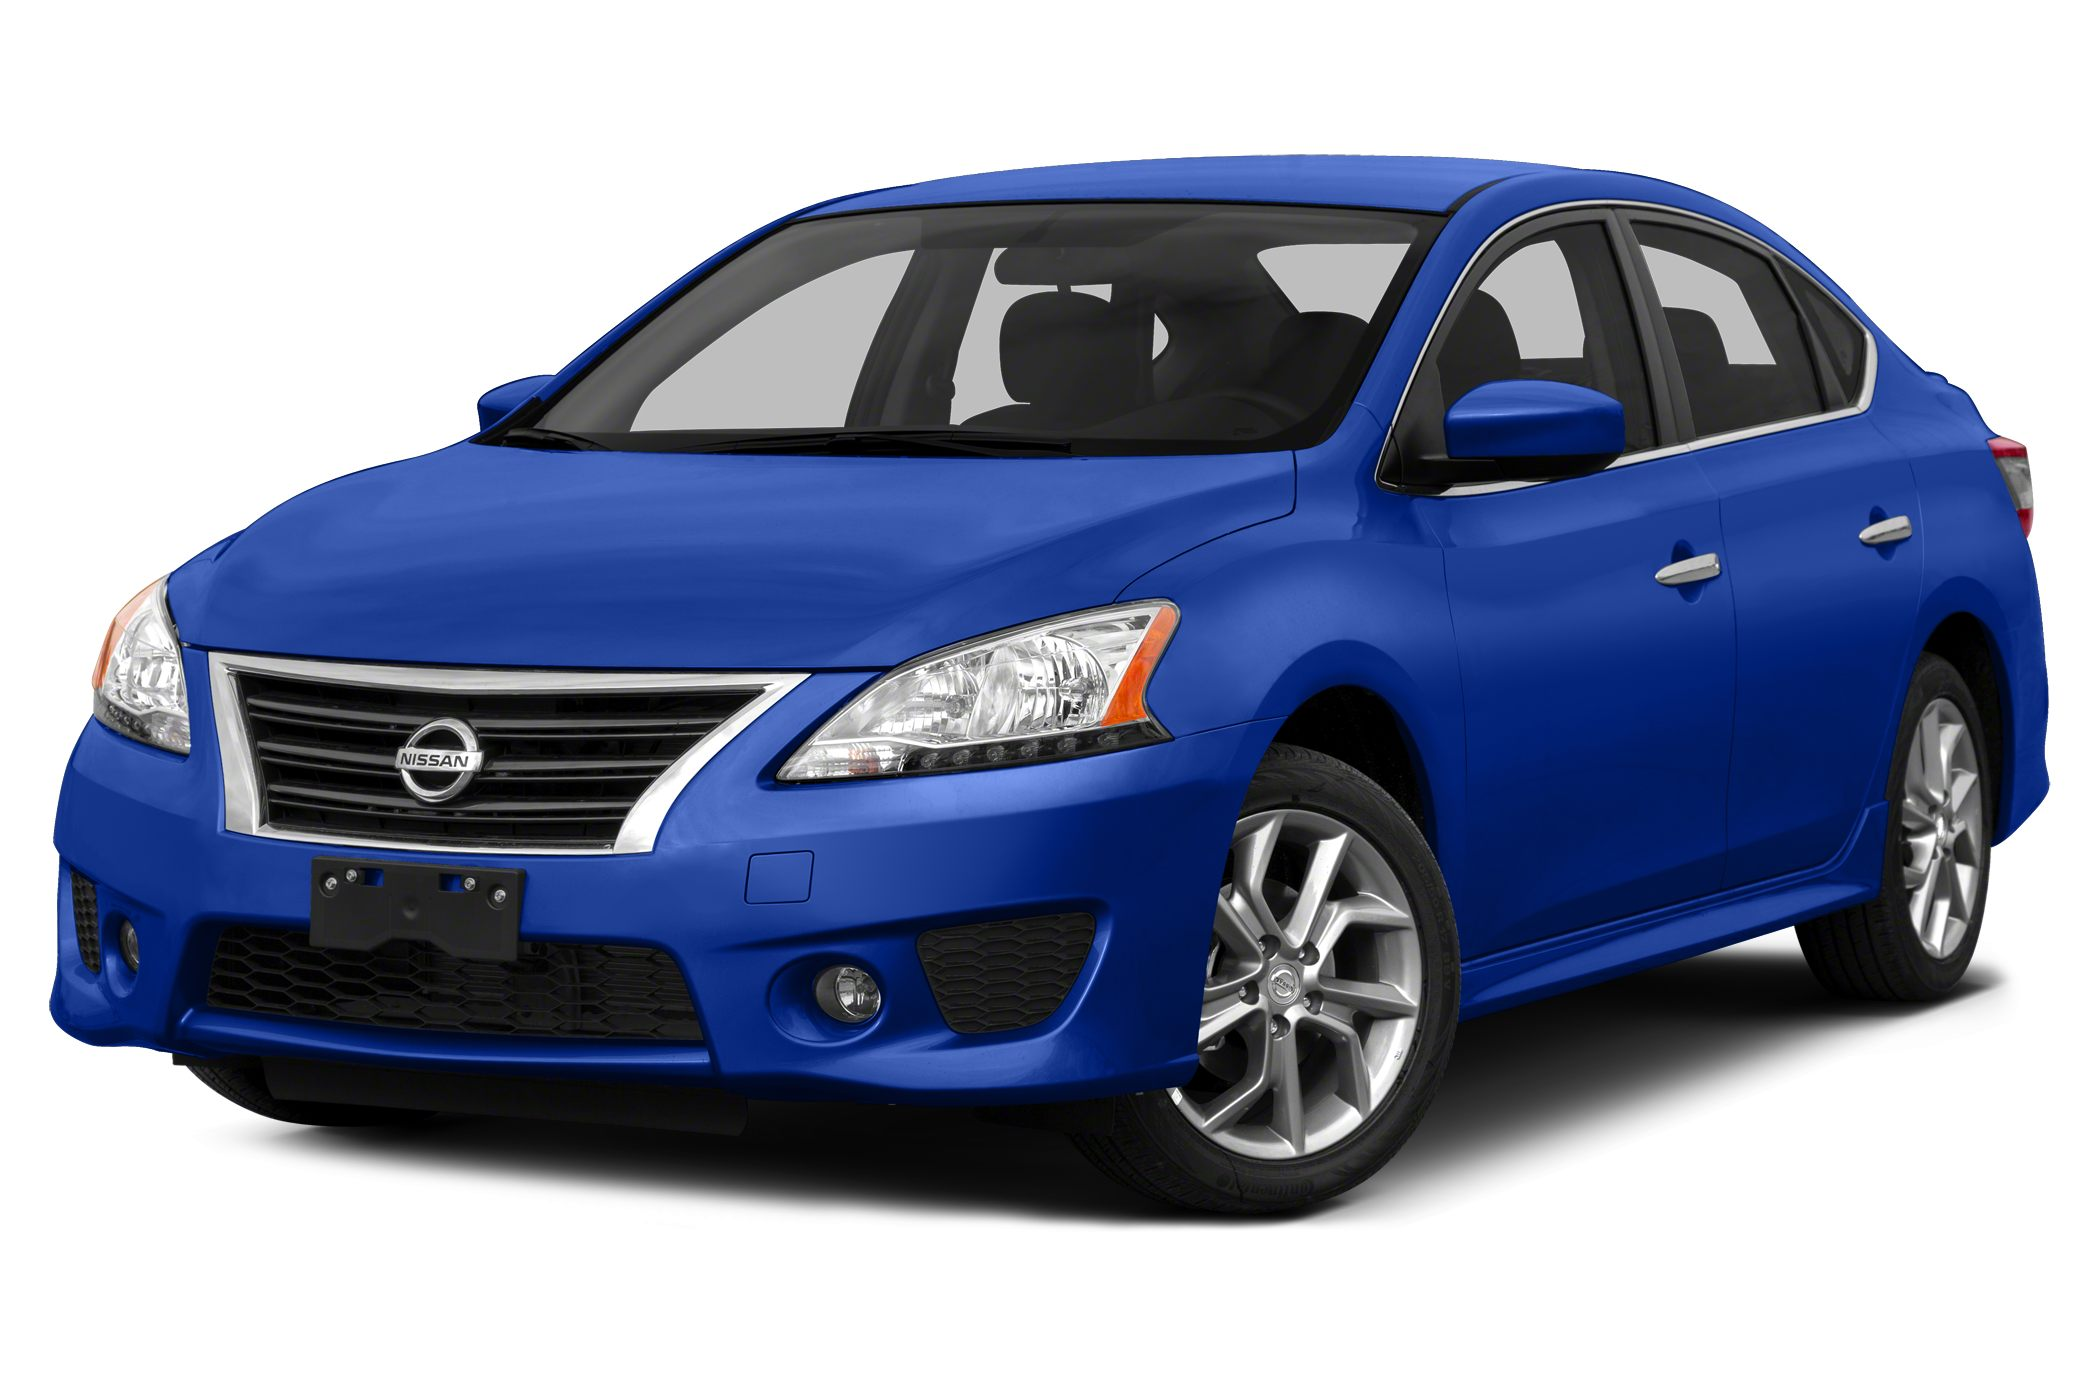 2013 Nissan Sentra SR Sedan for sale in Schenectady for $15,999 with 11,492 miles